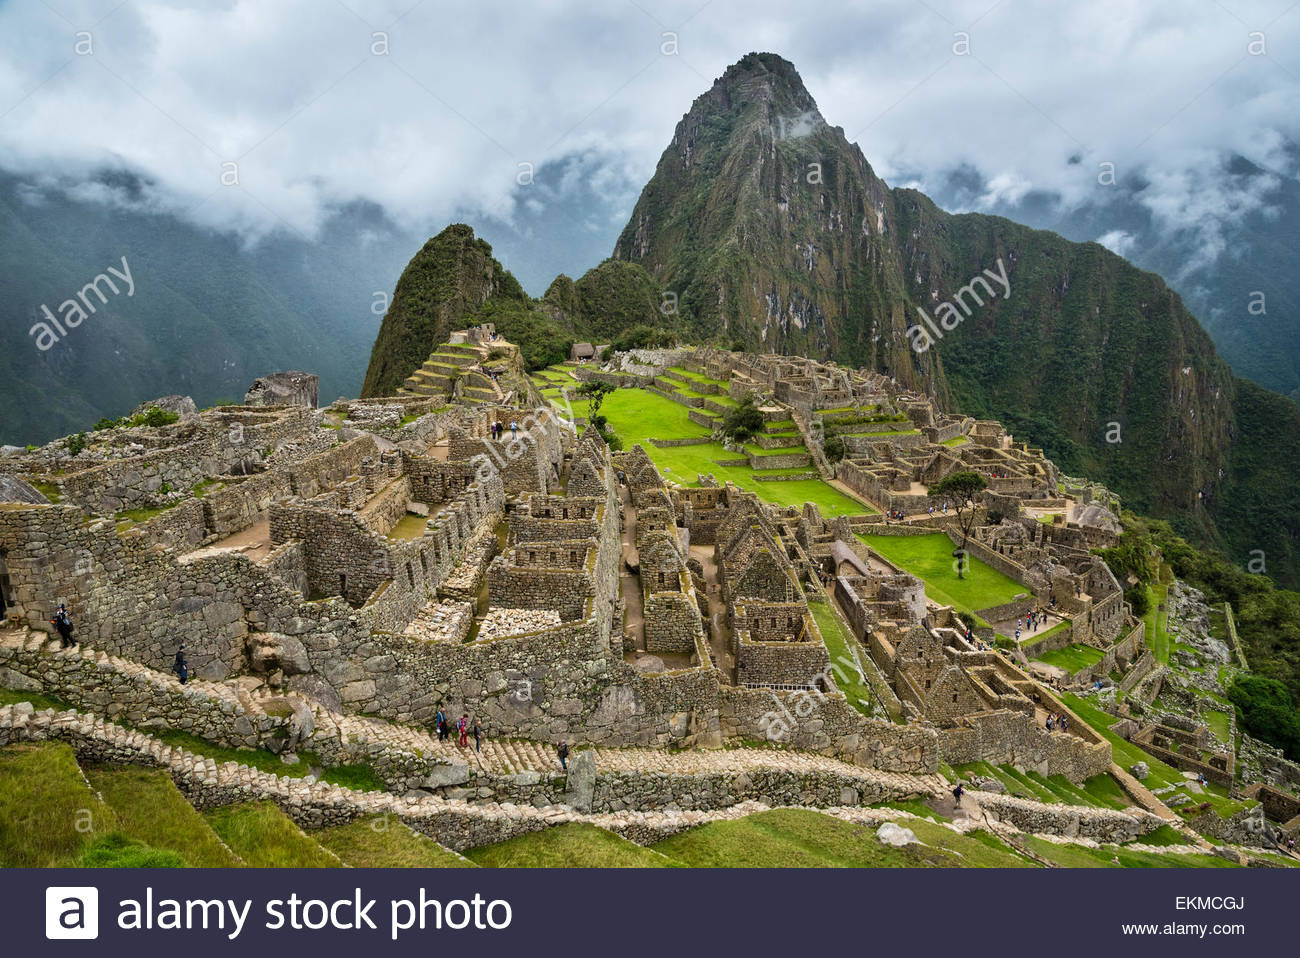 peru landmarks stock photos